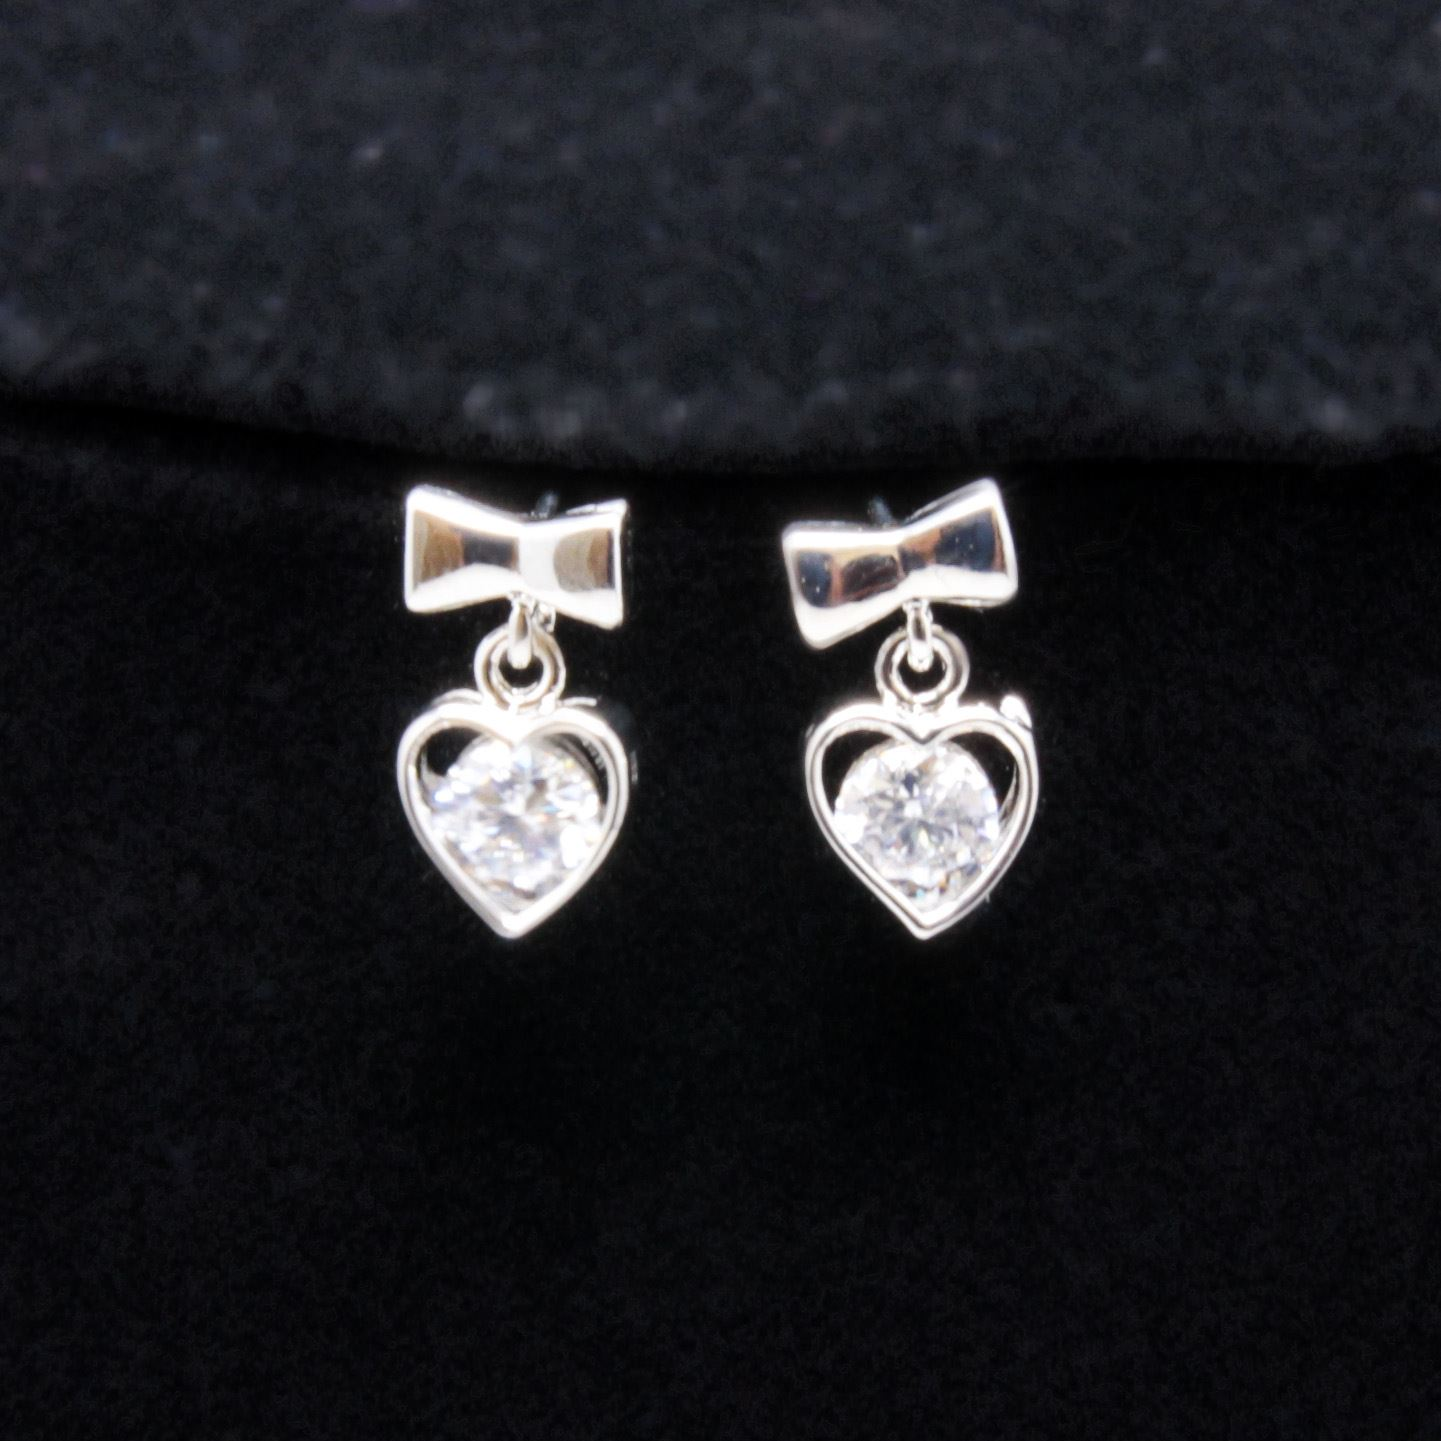 Fashion-Costume-Jewellery-Necklace-amp-Earring-Sets-Buy-2Get1-Free thumbnail 31